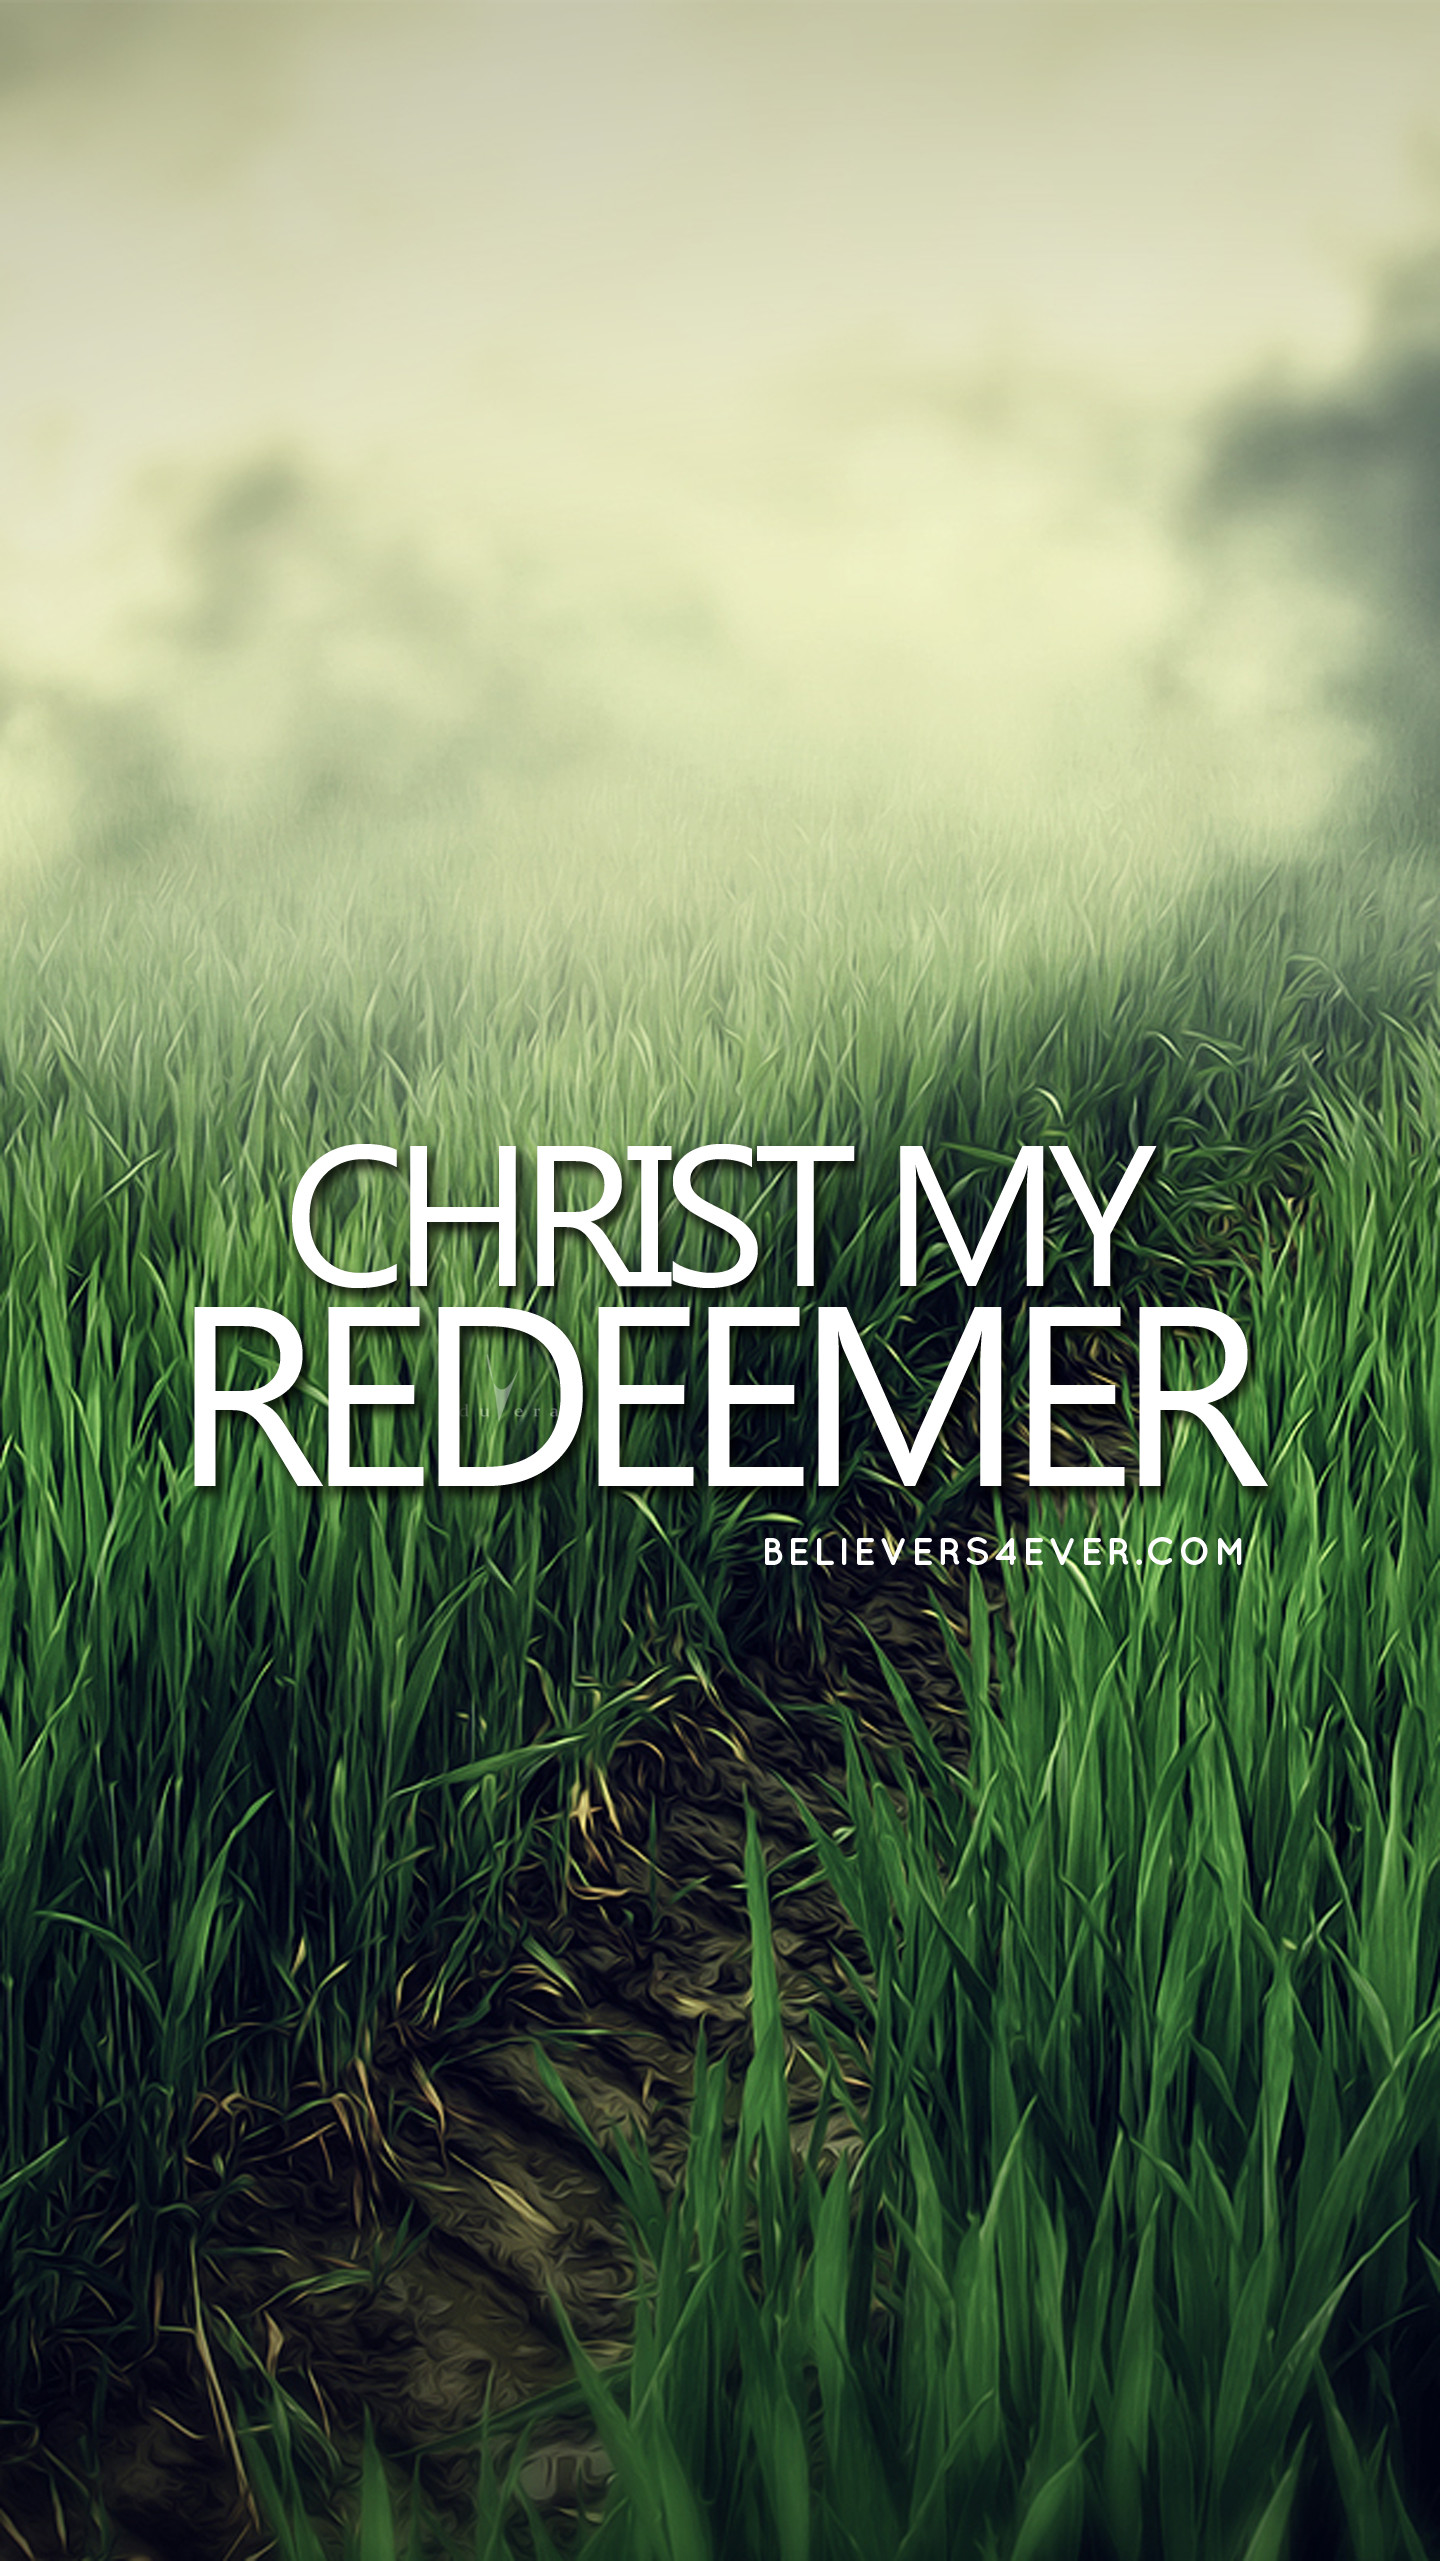 Christian hd wallpapers 1080p 71 images - Full hd bible wallpapers ...